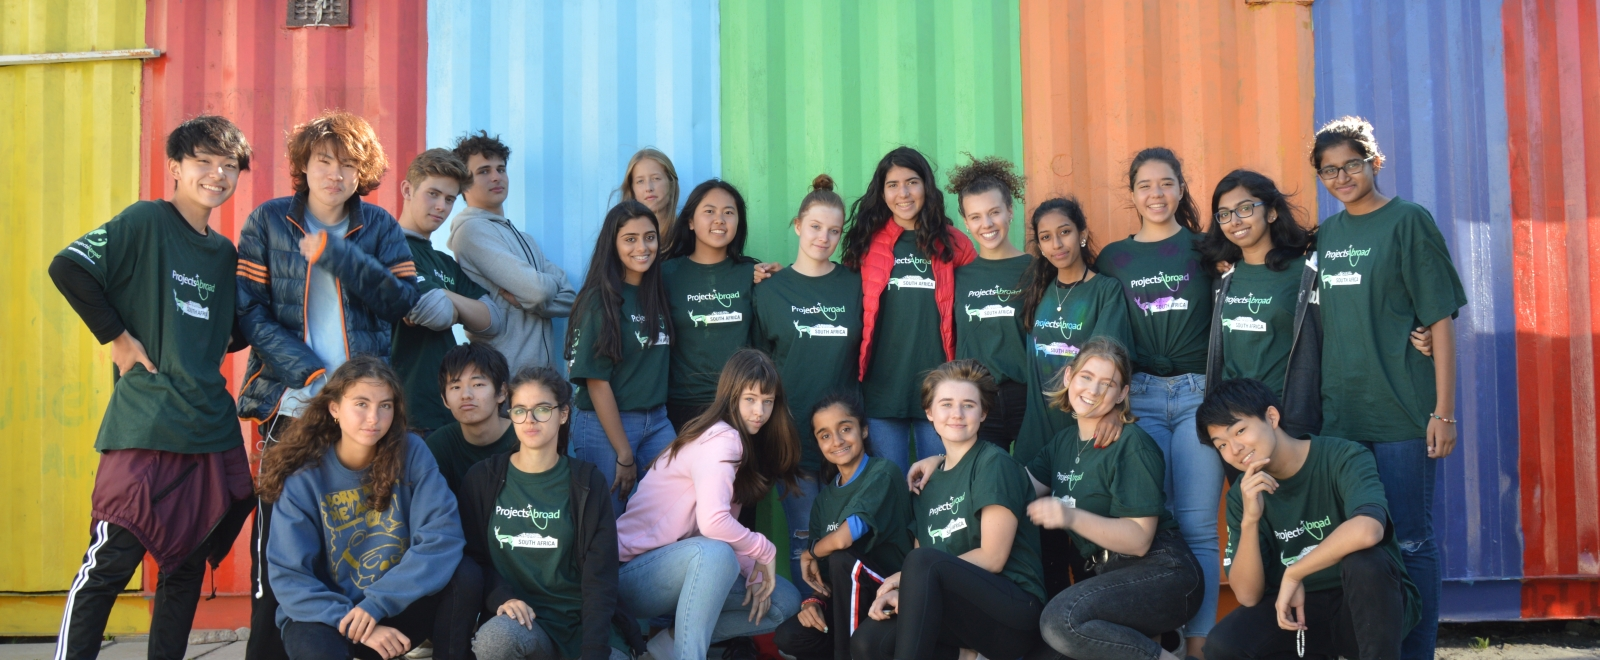 High school students volunteering abroad on Projects Abroad's programs for 15 year olds.